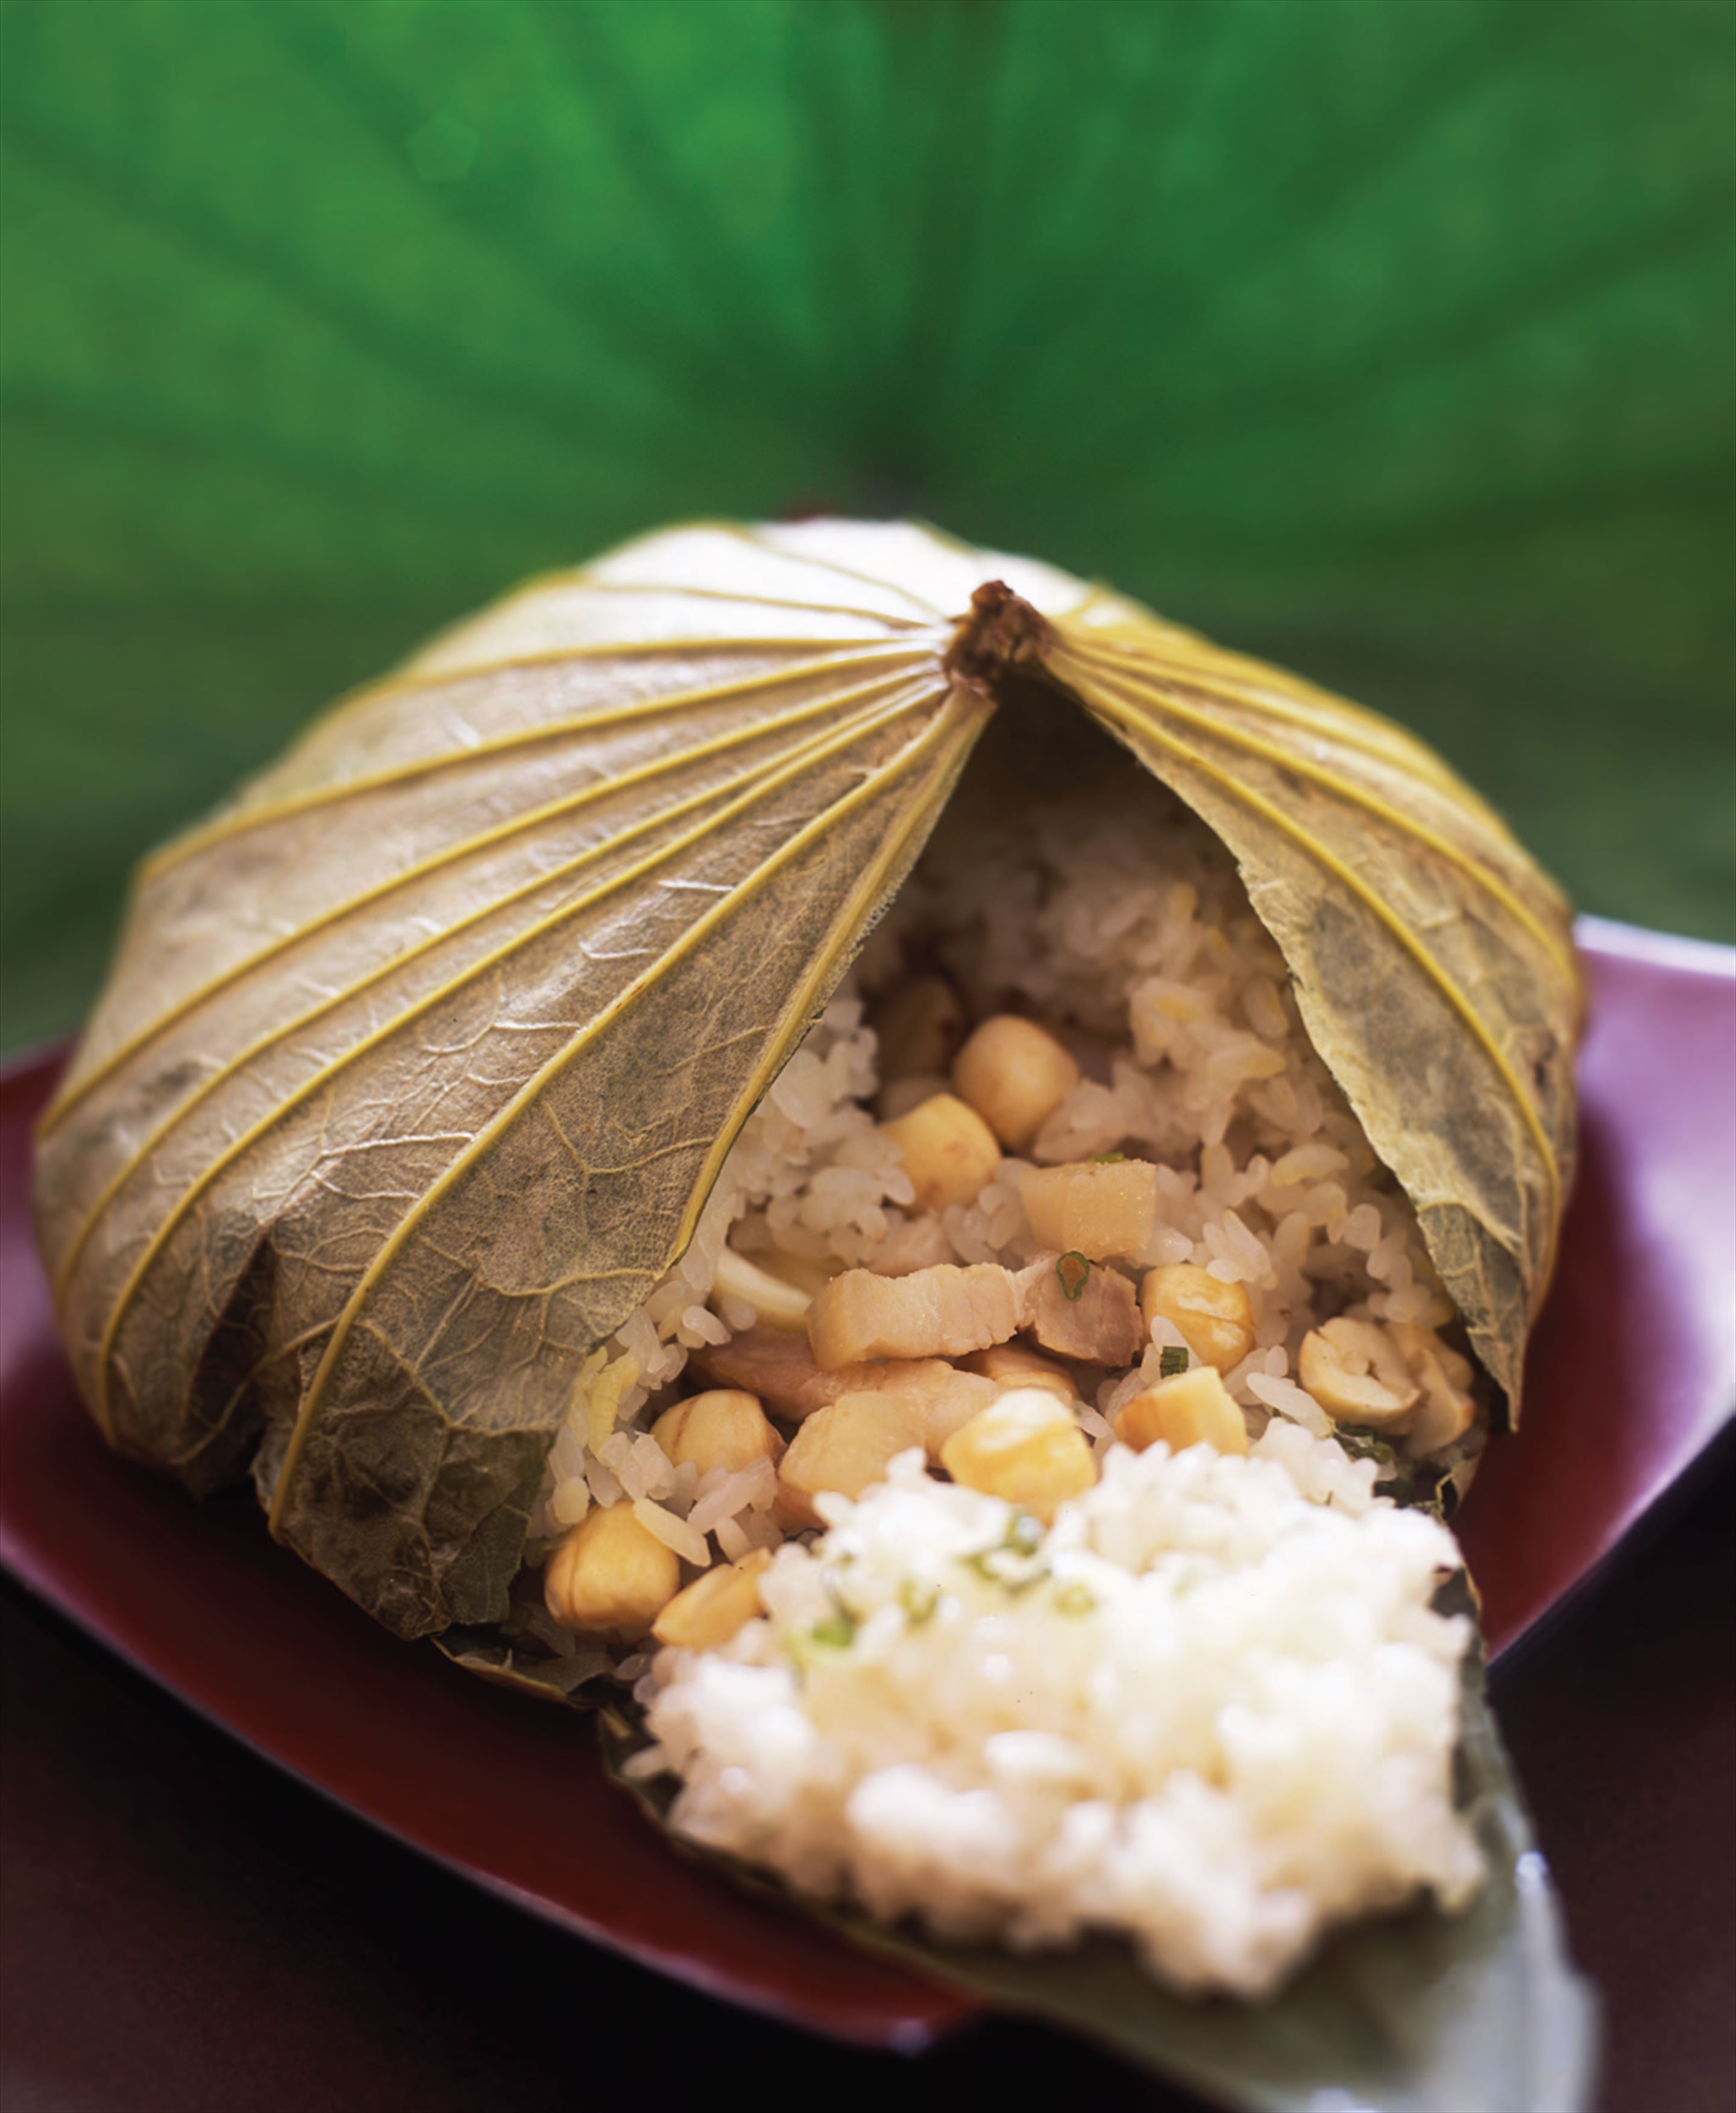 Sticky rice steamed in lotus leaf